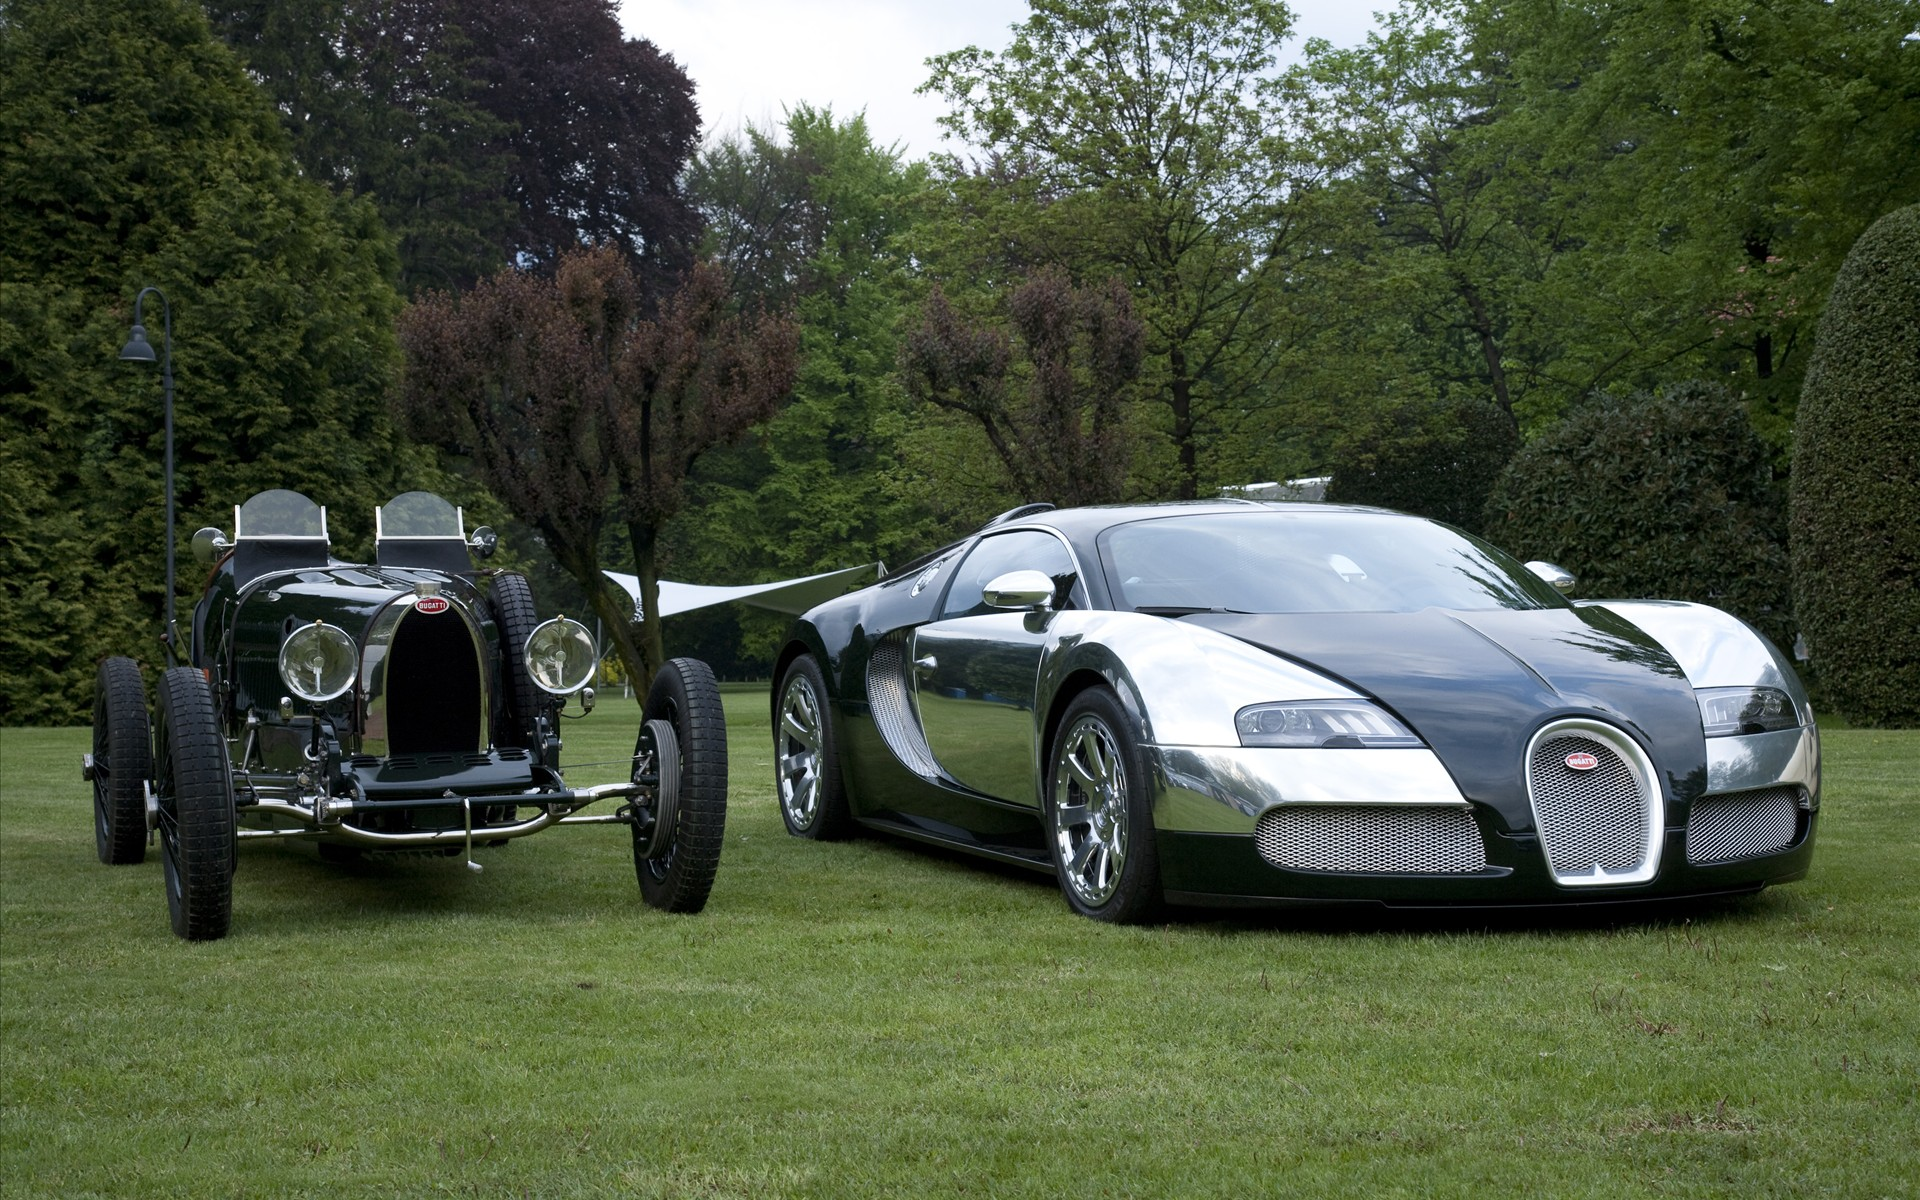 Bugatti Full HD Wallpaper and Background Image | 1920x1200 | ID:360486